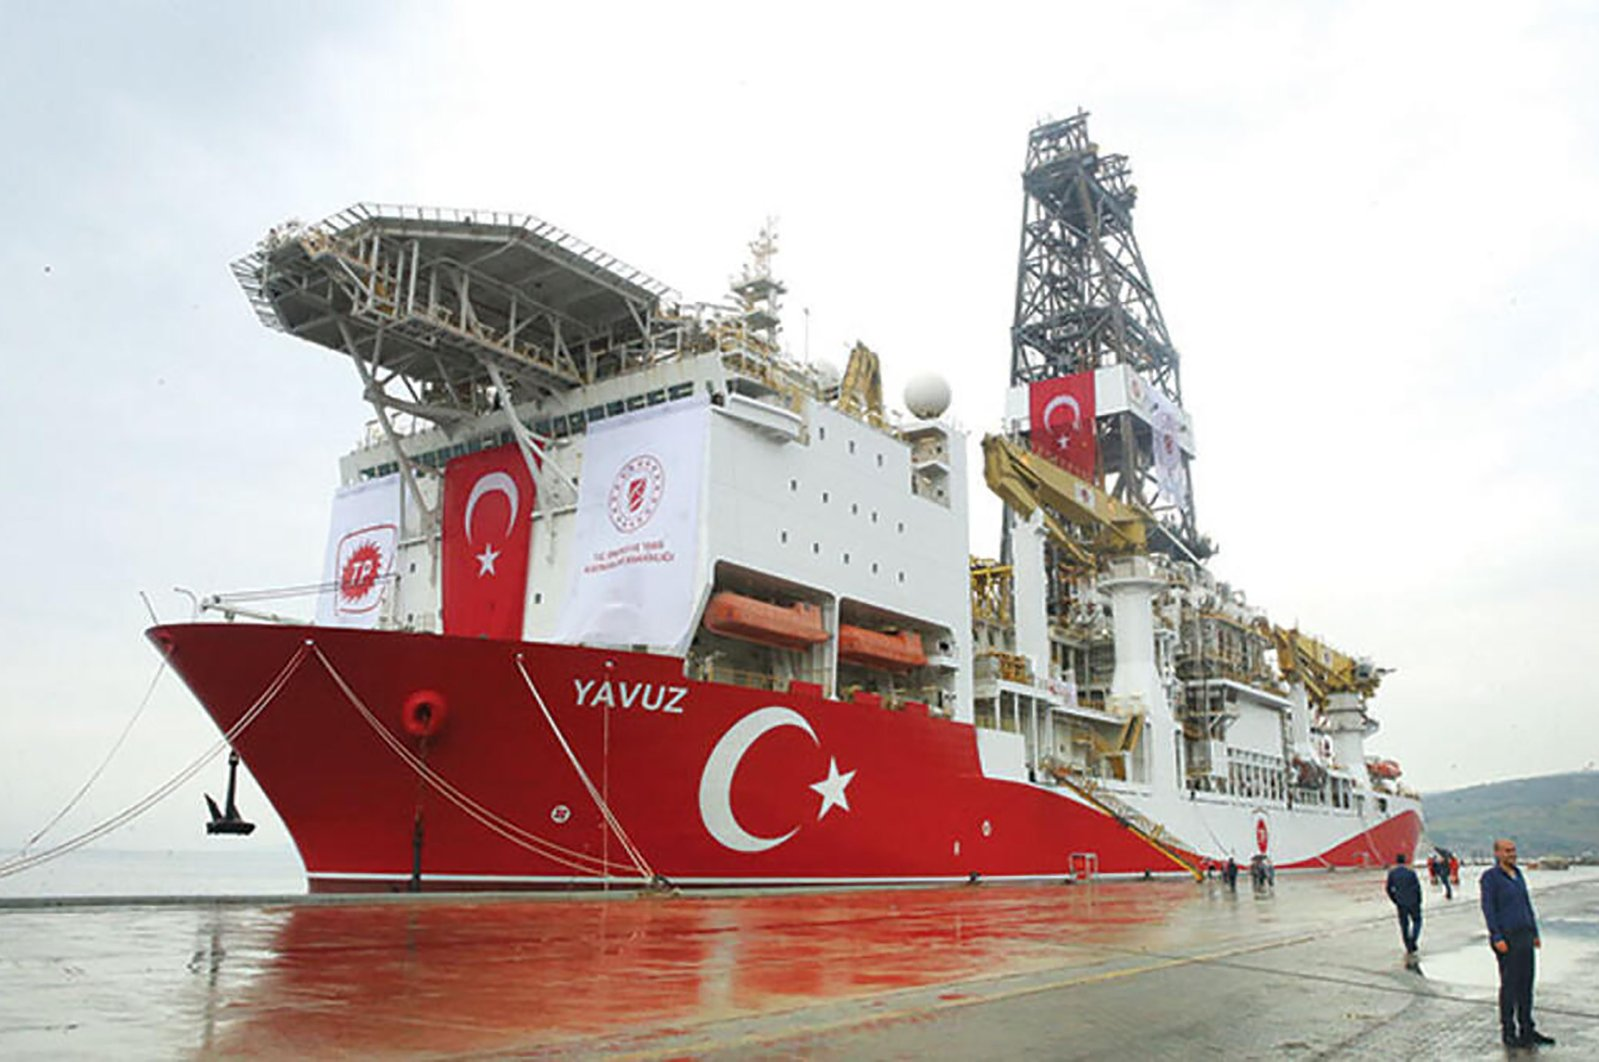 Yavuz drillship is one of the two drilling vessels of Turkey in the Eastern Mediterranean, asserting the rights of the country and the Northern Cyprus over the resources of the region. (SABAH)